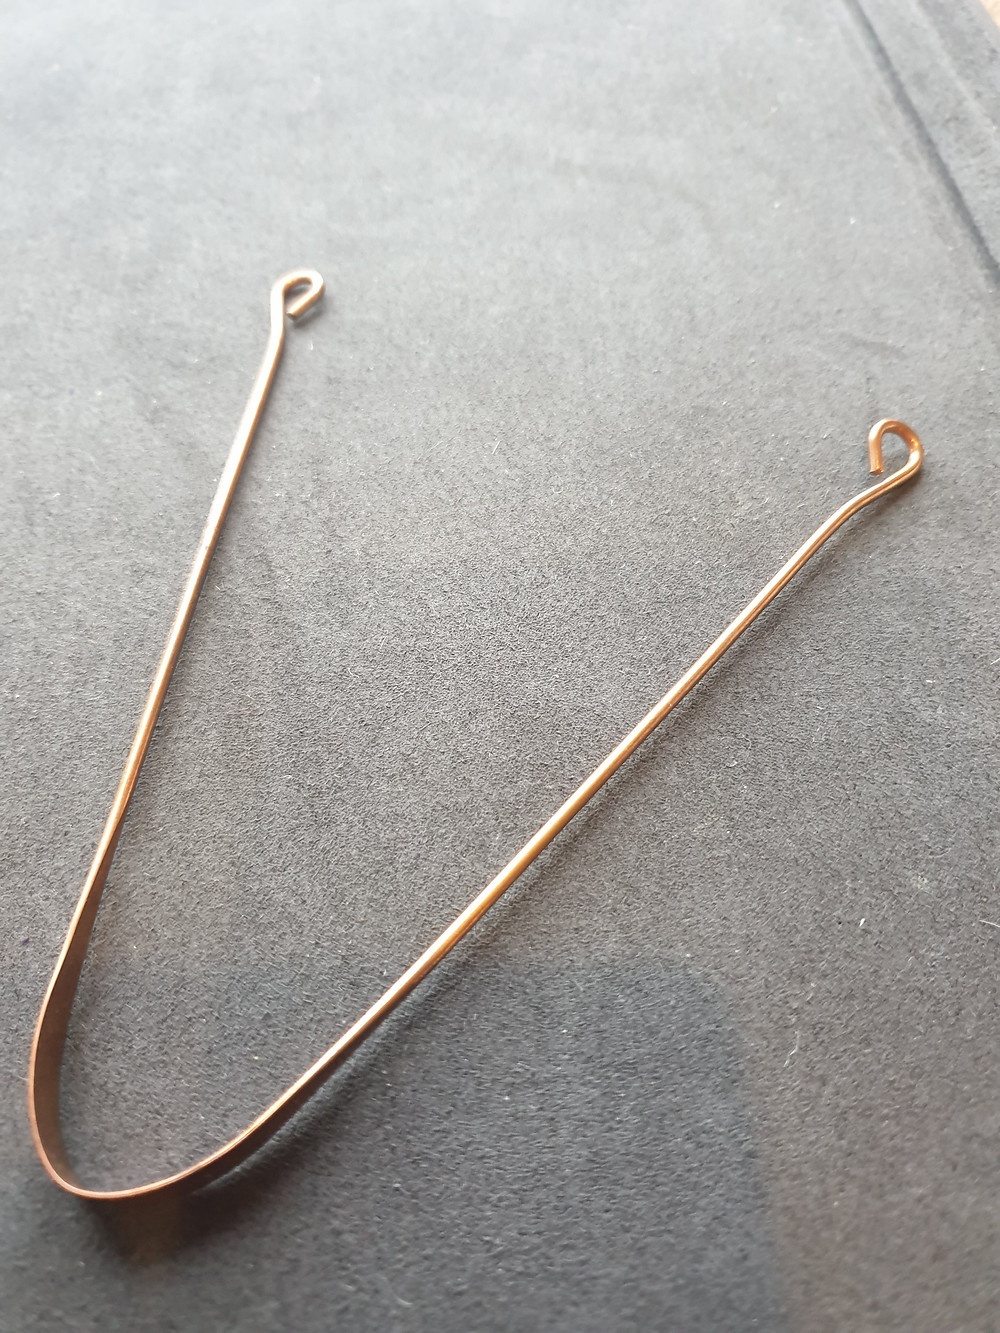 Copper Tongue Scraper from India